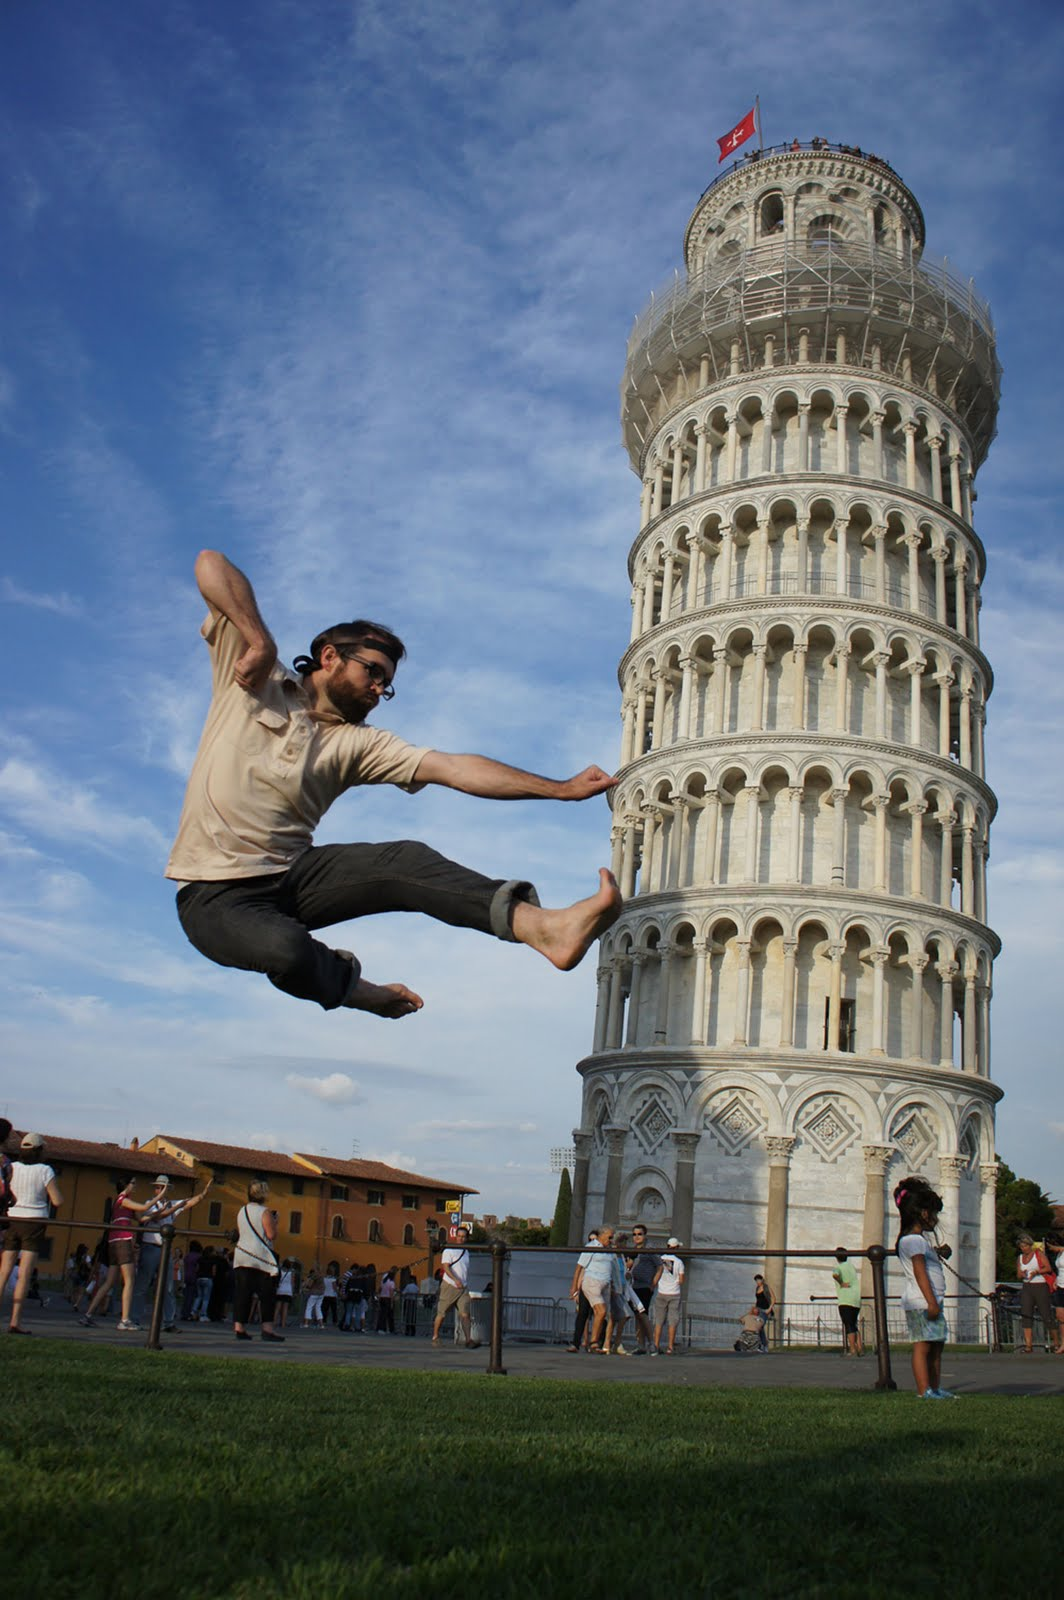 Leaning Tower Of Pisa Wallpaper 95 images in Collection Page 3 1064x1600